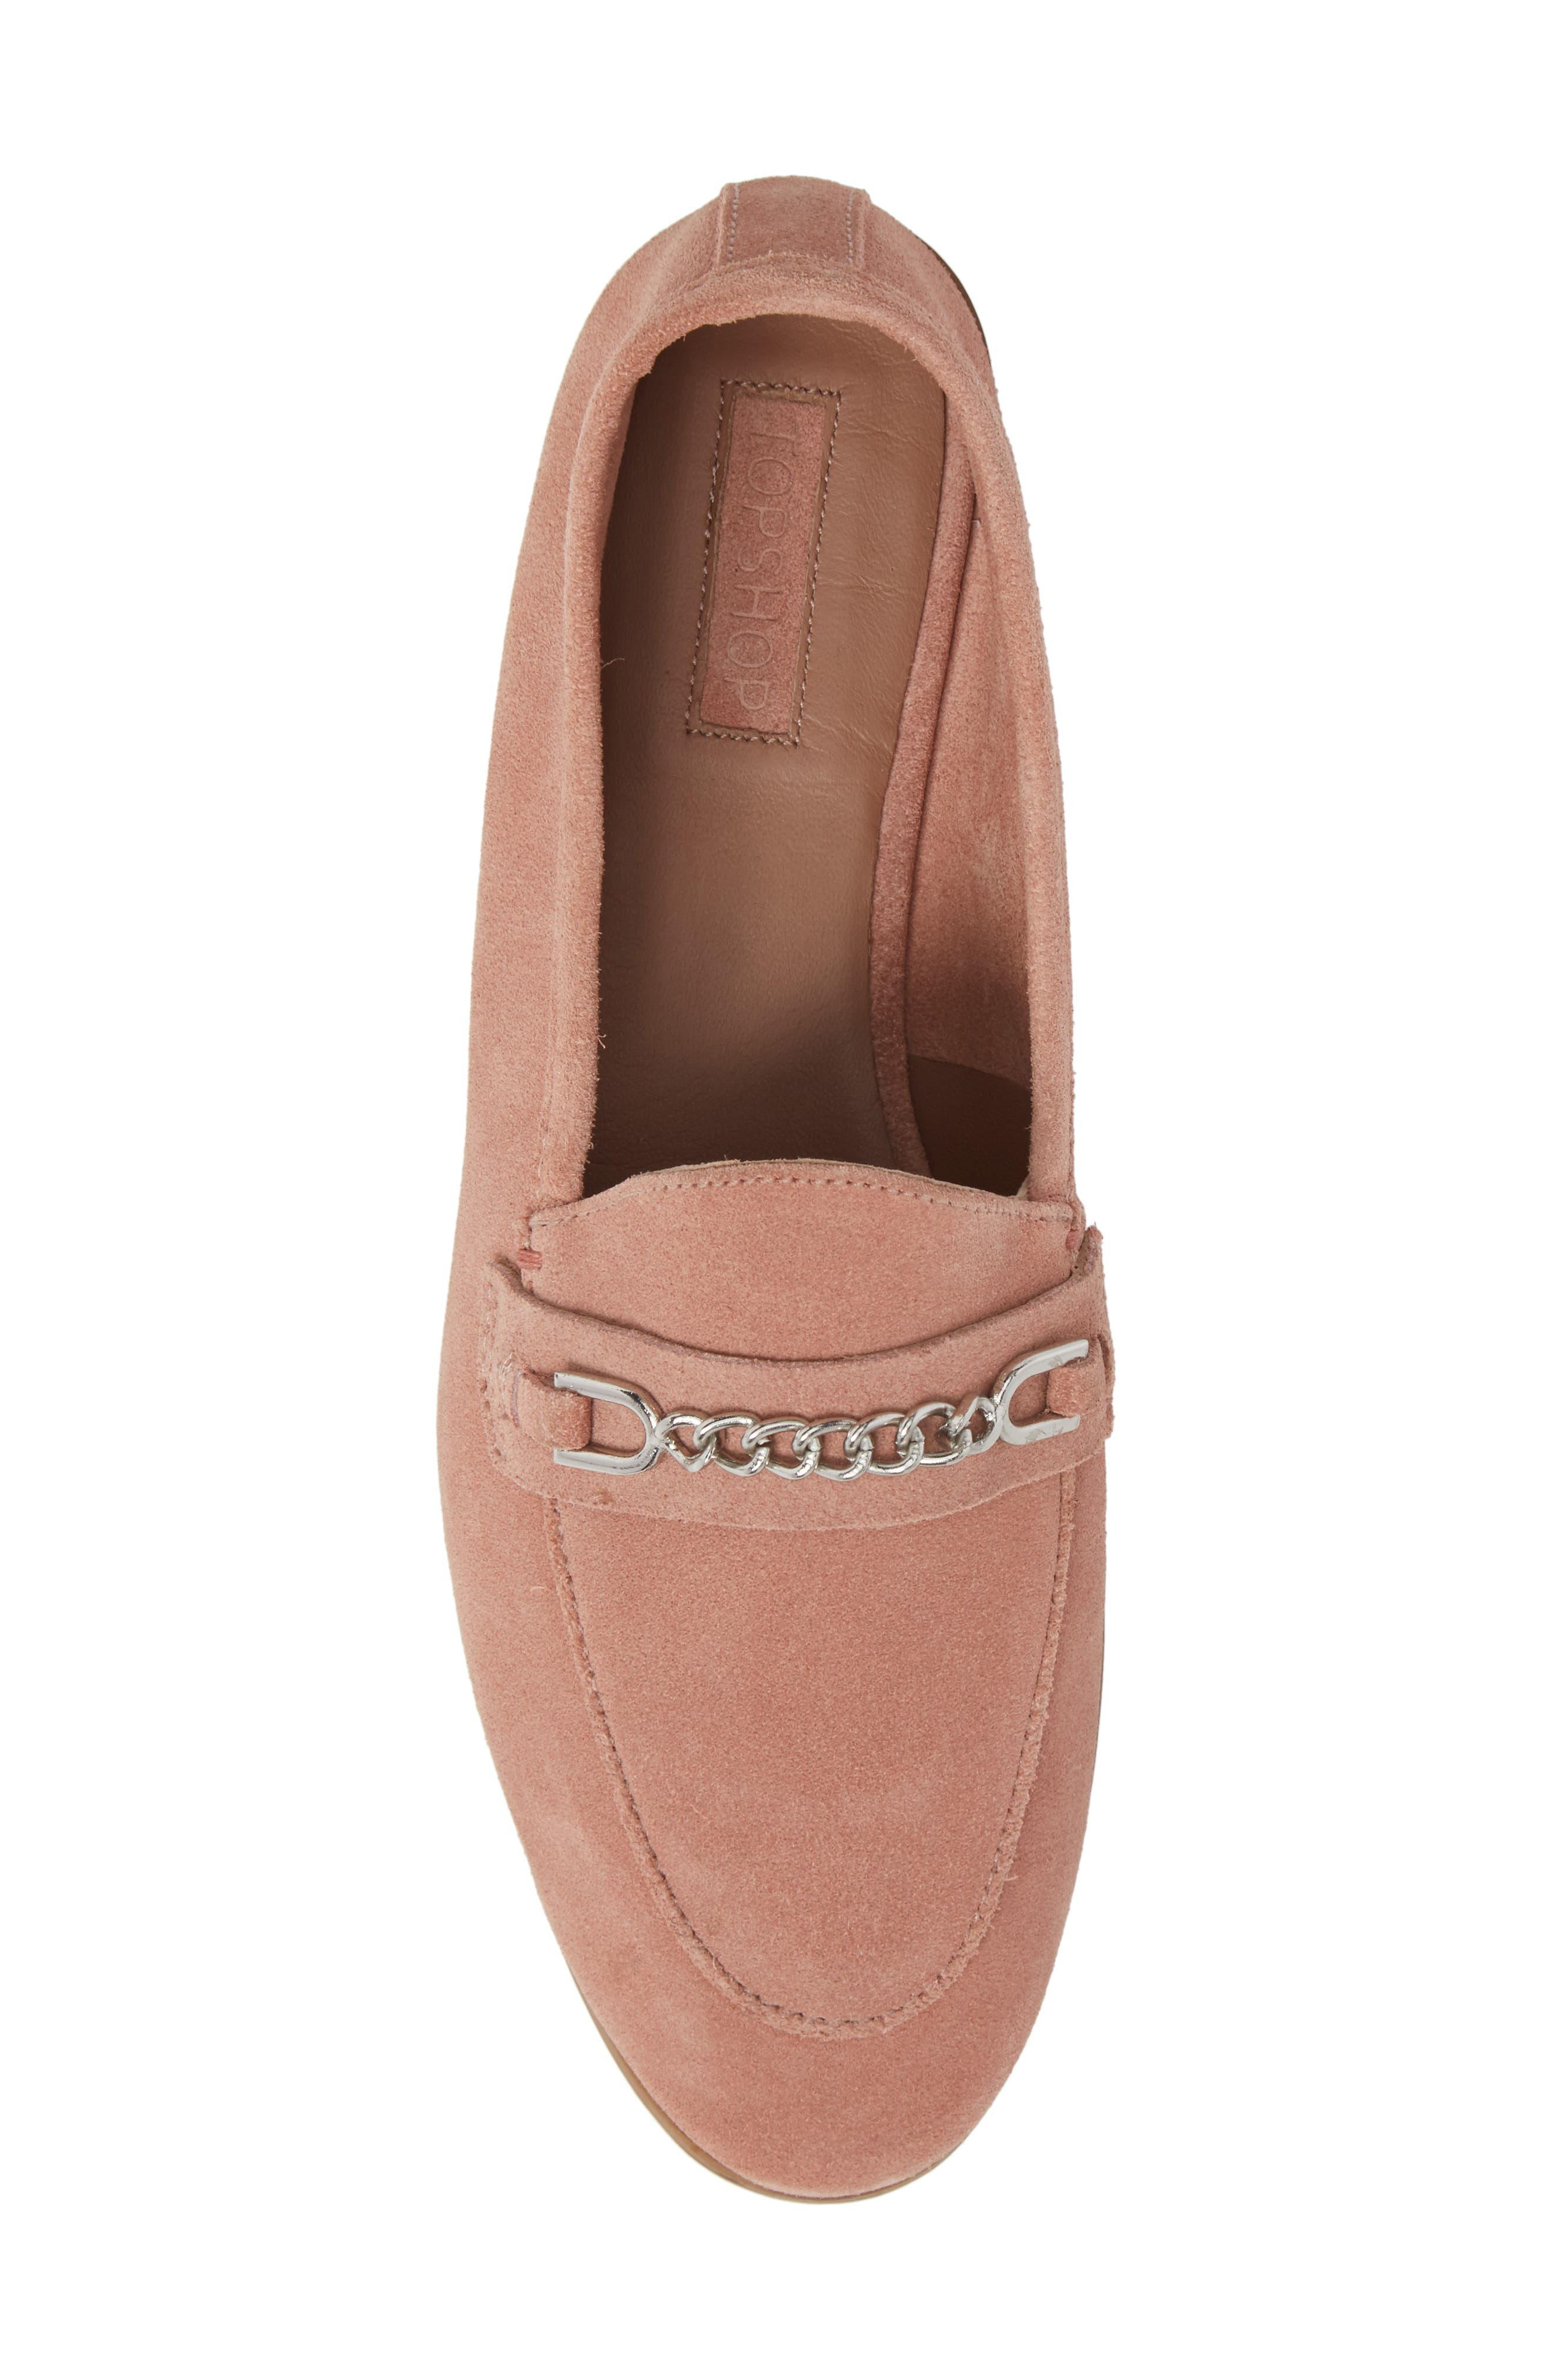 Key Trim Chain Loafer,                             Alternate thumbnail 5, color,                             Pink Multi